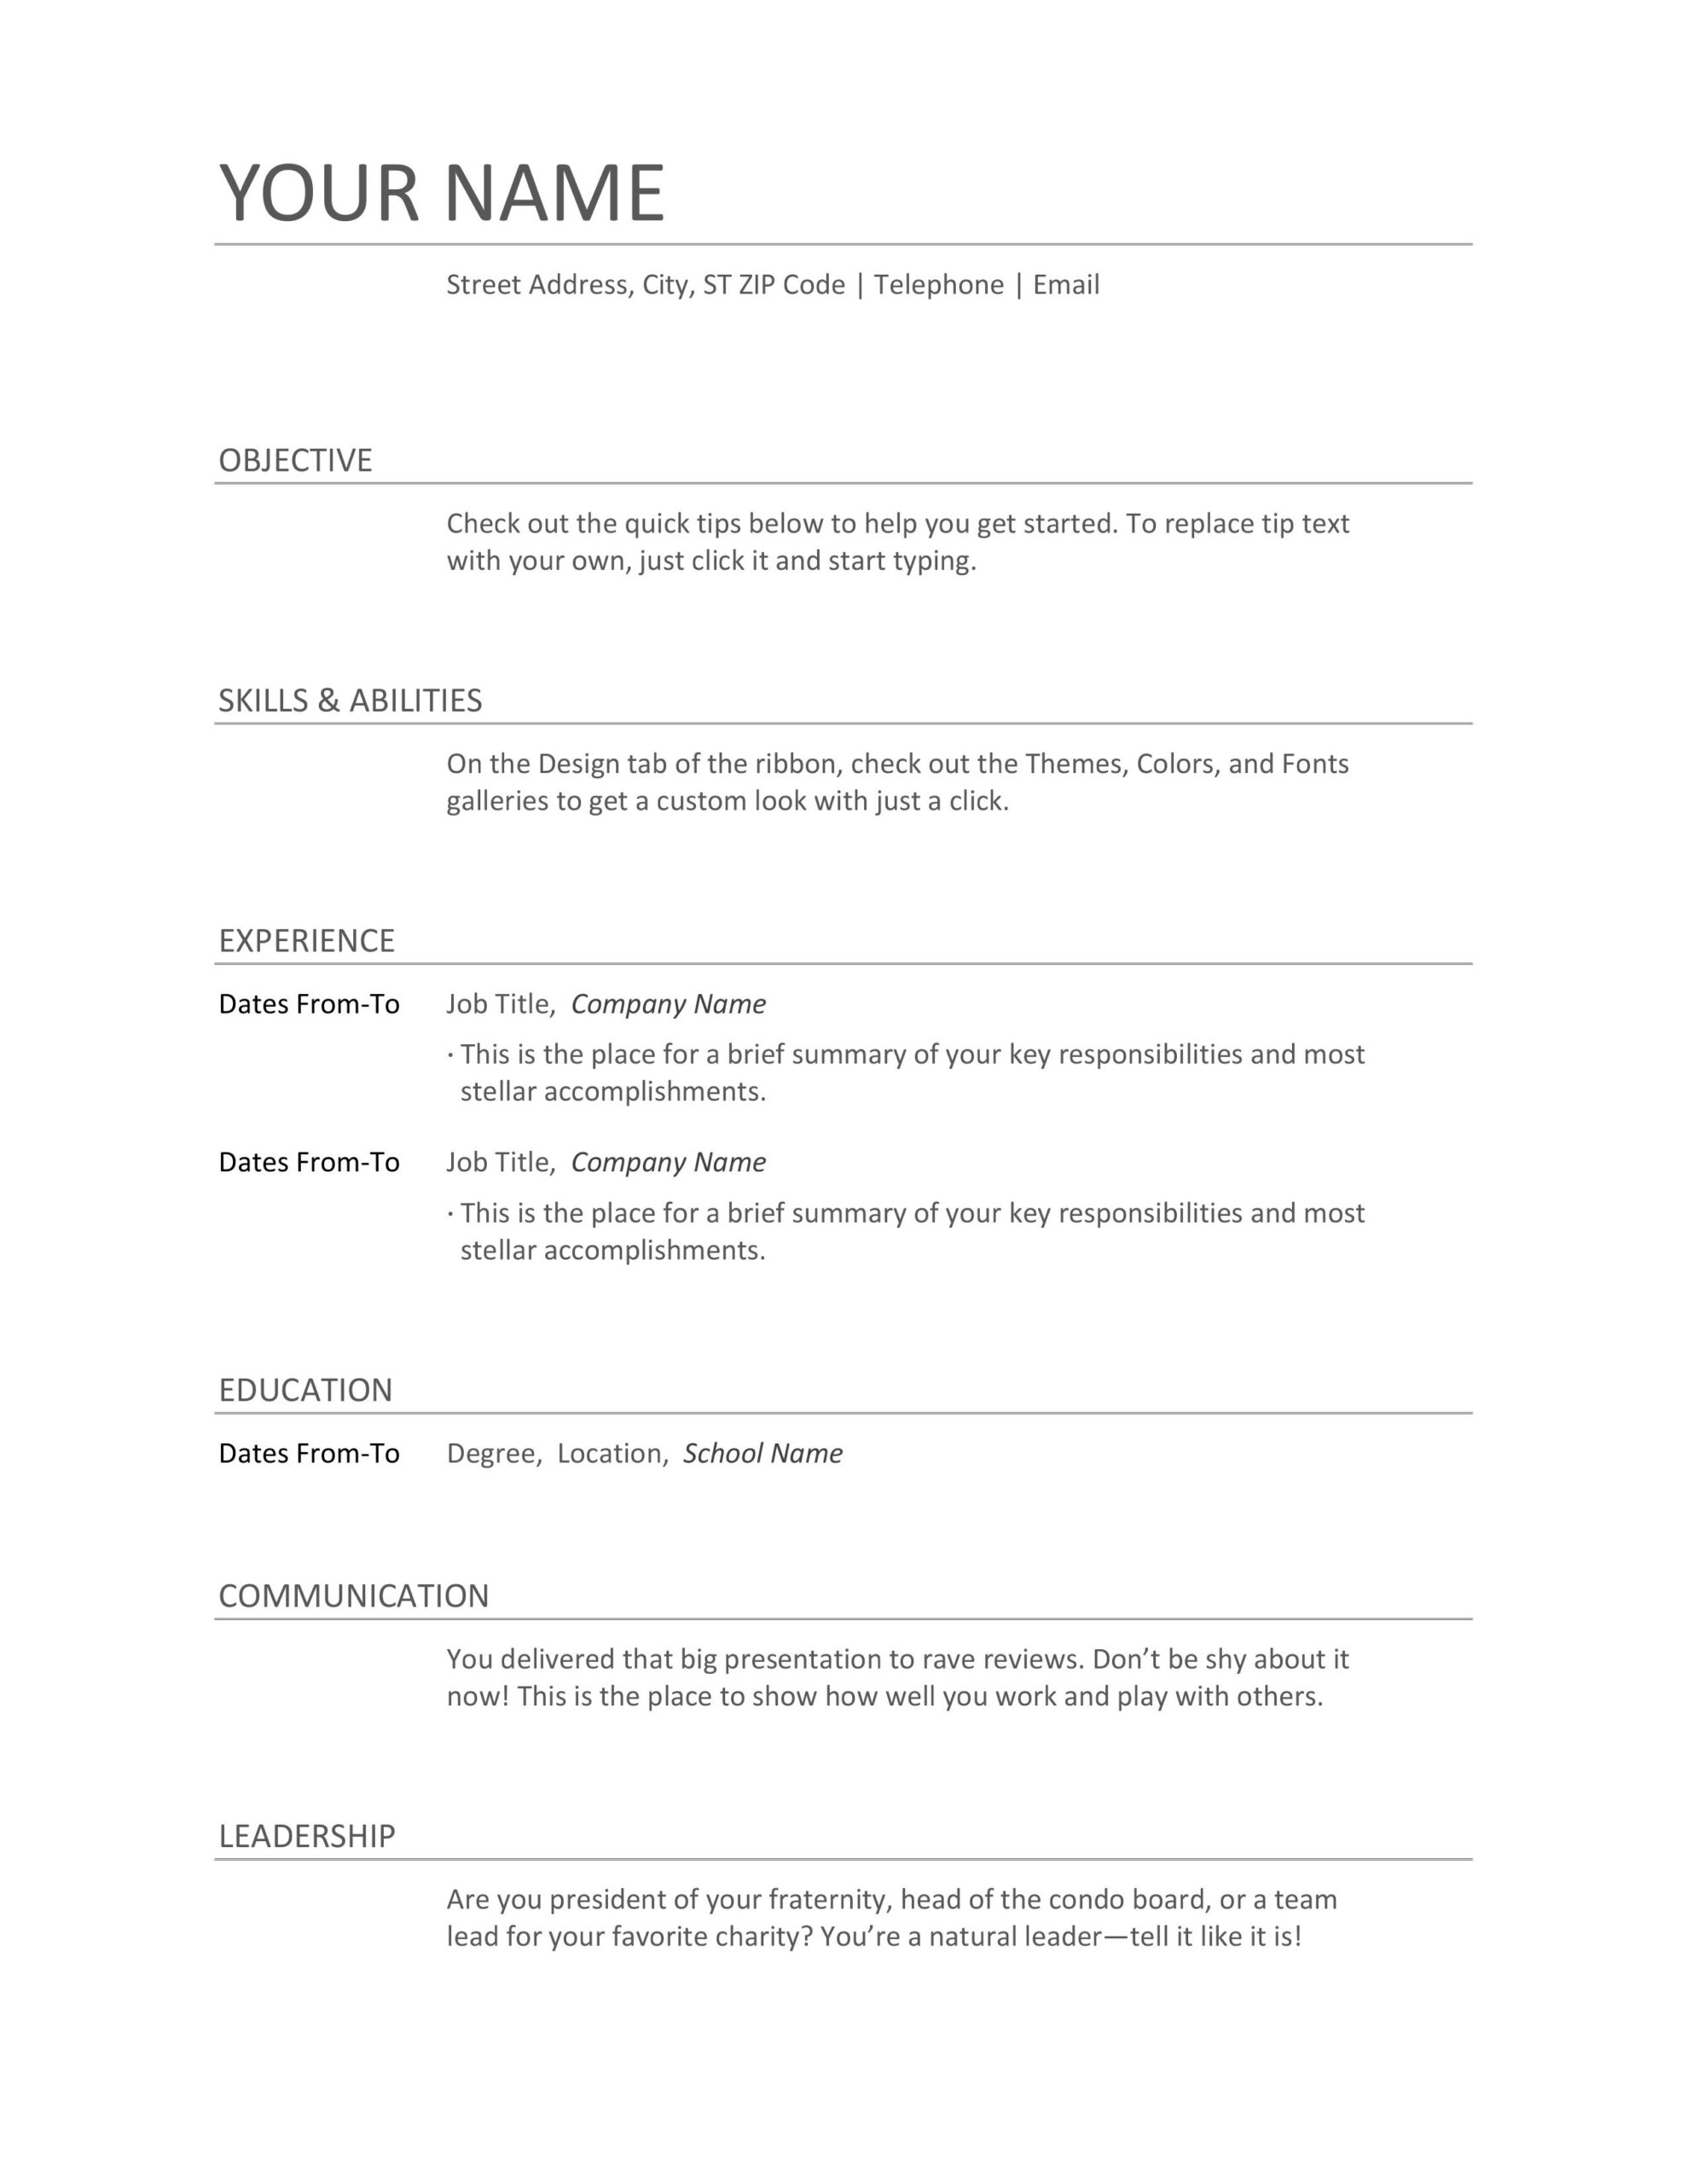 formats of resume examples and sample for freshers tamil teacher model combination Resume Tamil Teacher Resume Model